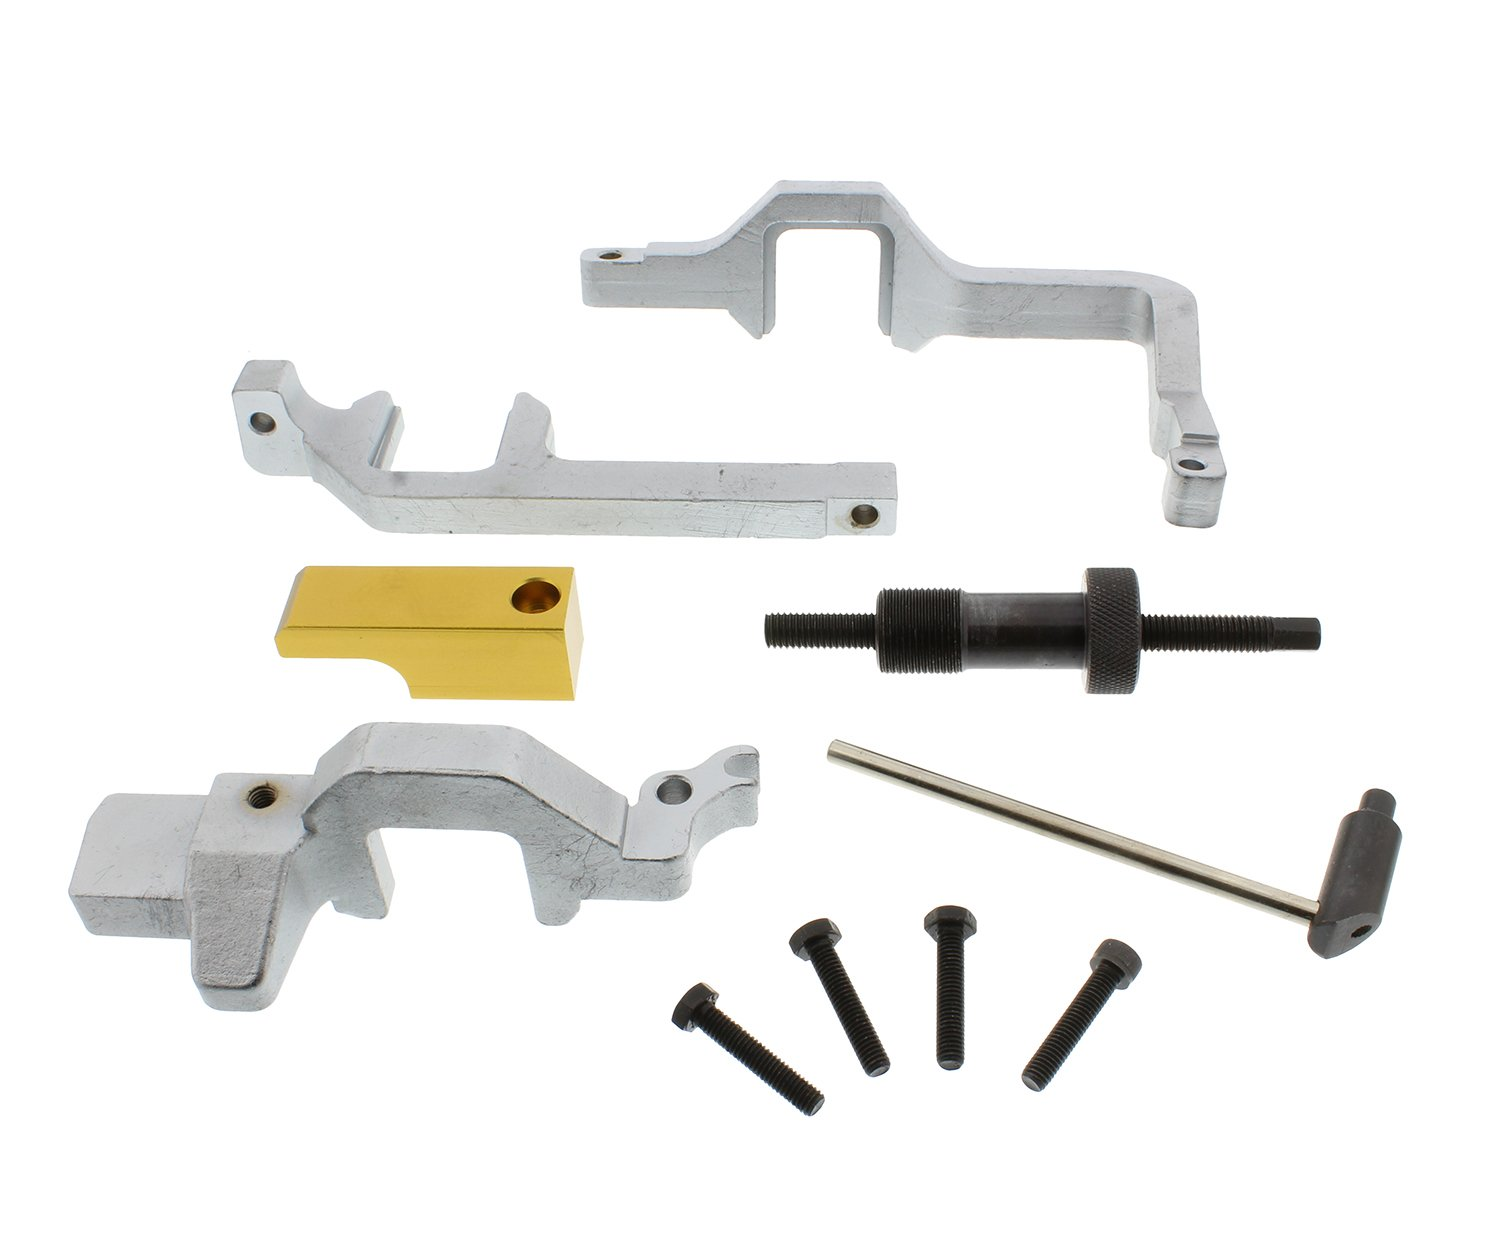 ABN Engine Timing Tool Set for Mini Cooper N12, N14 - BMW, Citroen, Peugeot by ABN (Image #3)